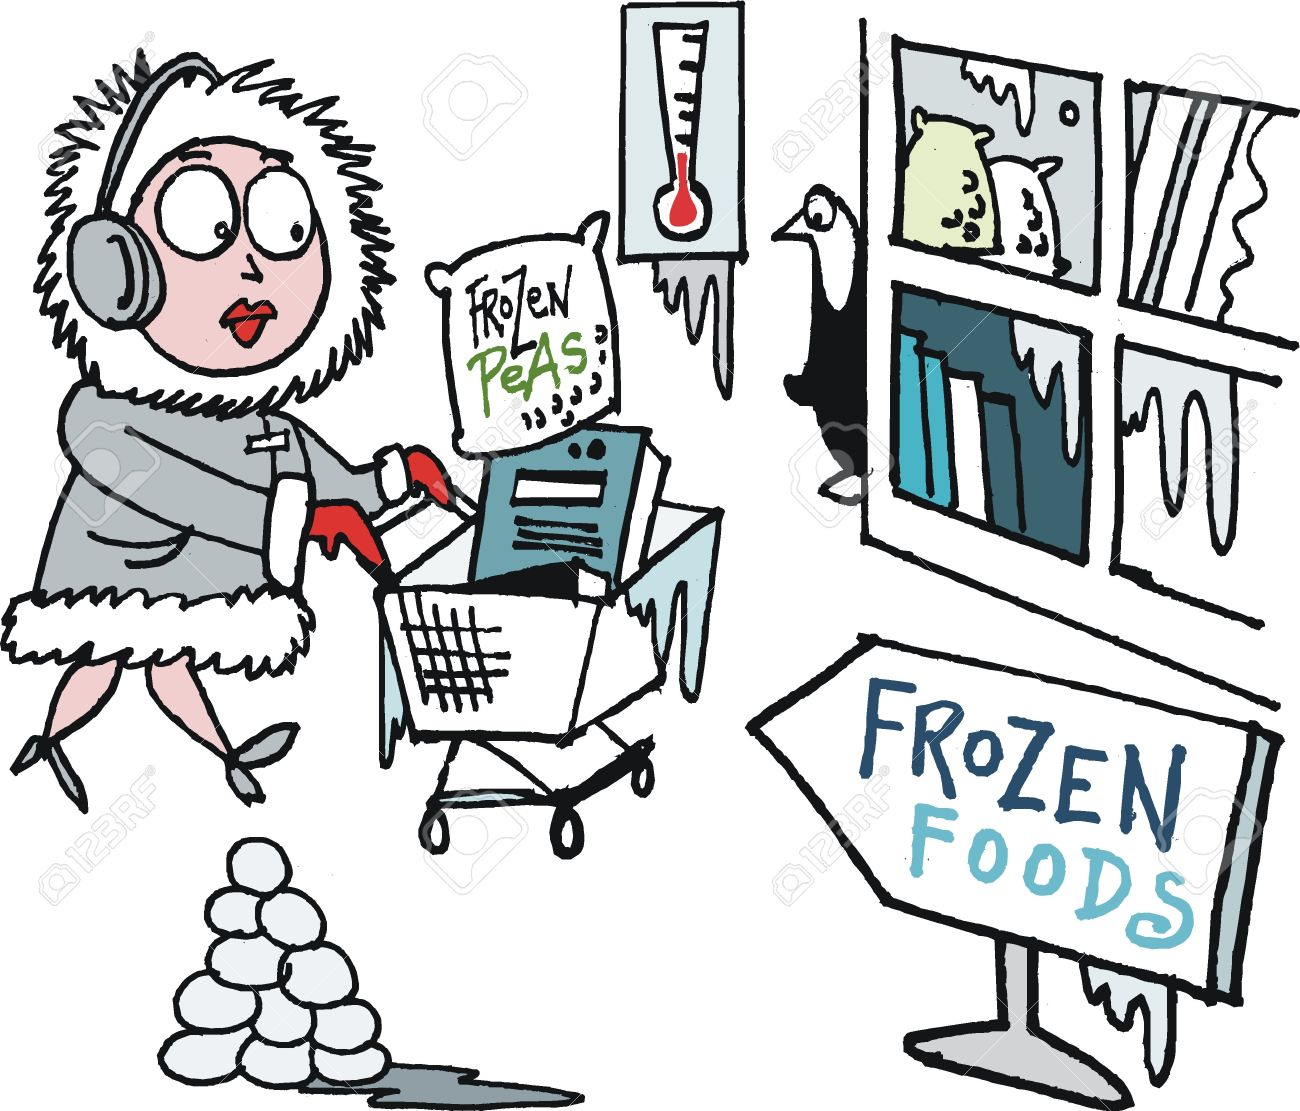 Do you get attracted towards Frozen Food Products?